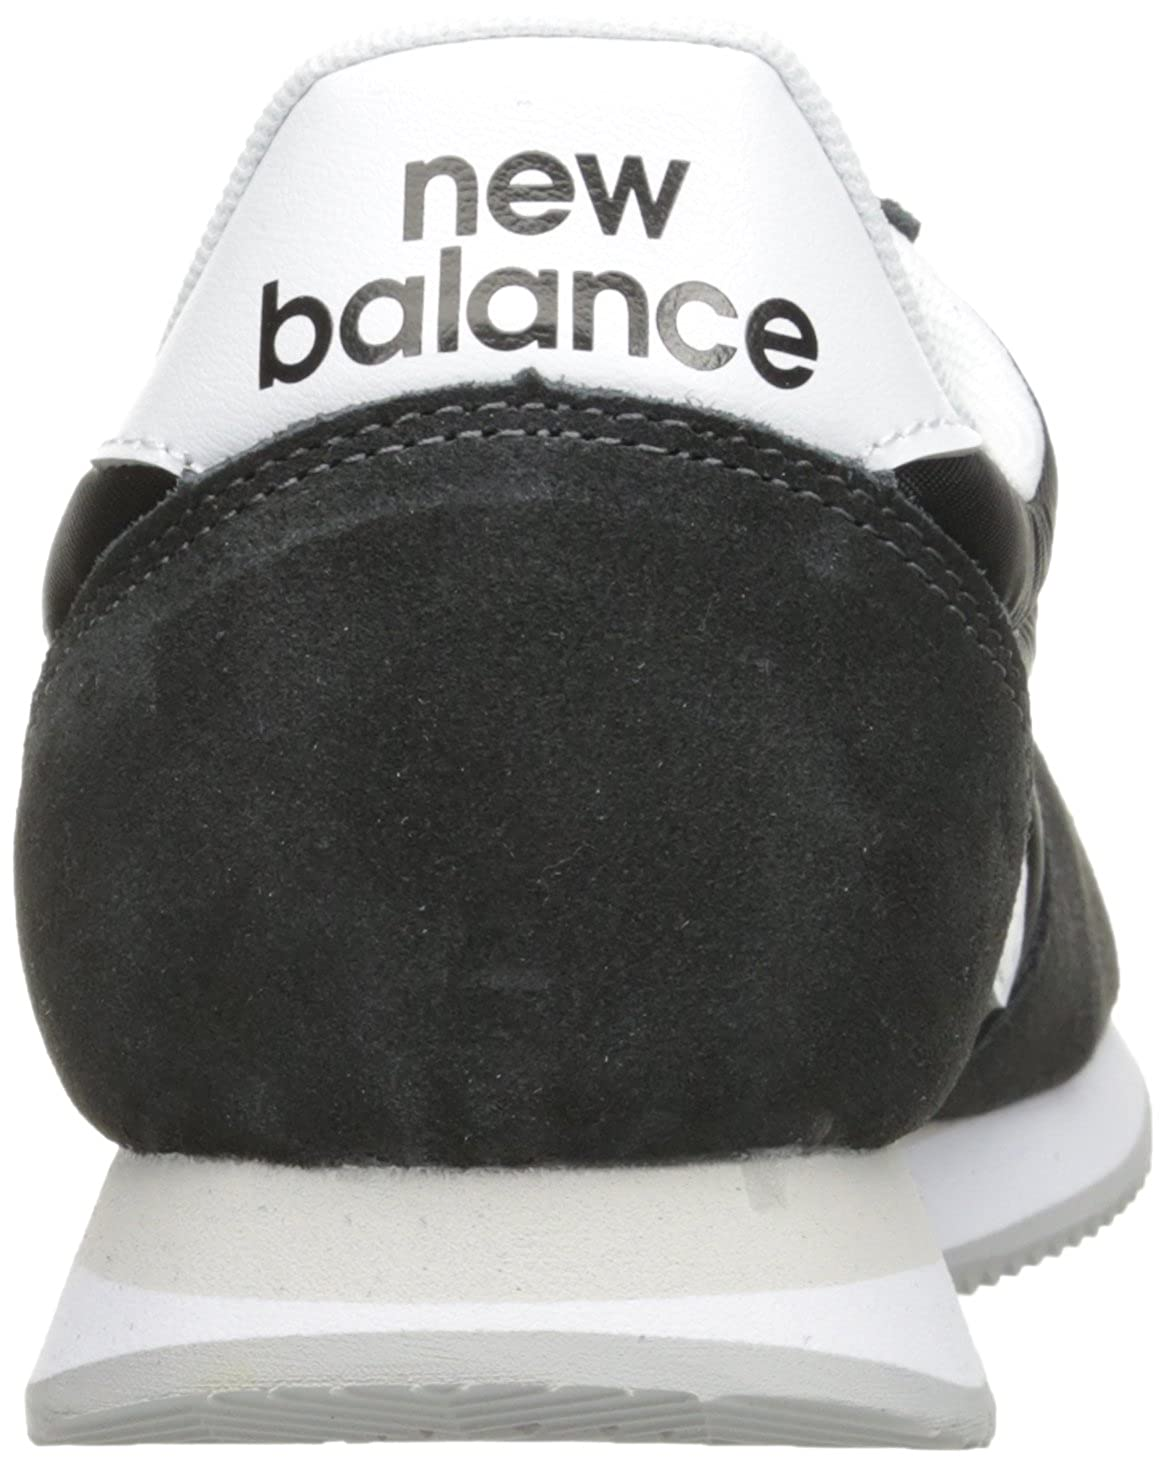 f08e791f118 New Balance Men's 220 Trainers: Amazon.co.uk: Shoes & Bags